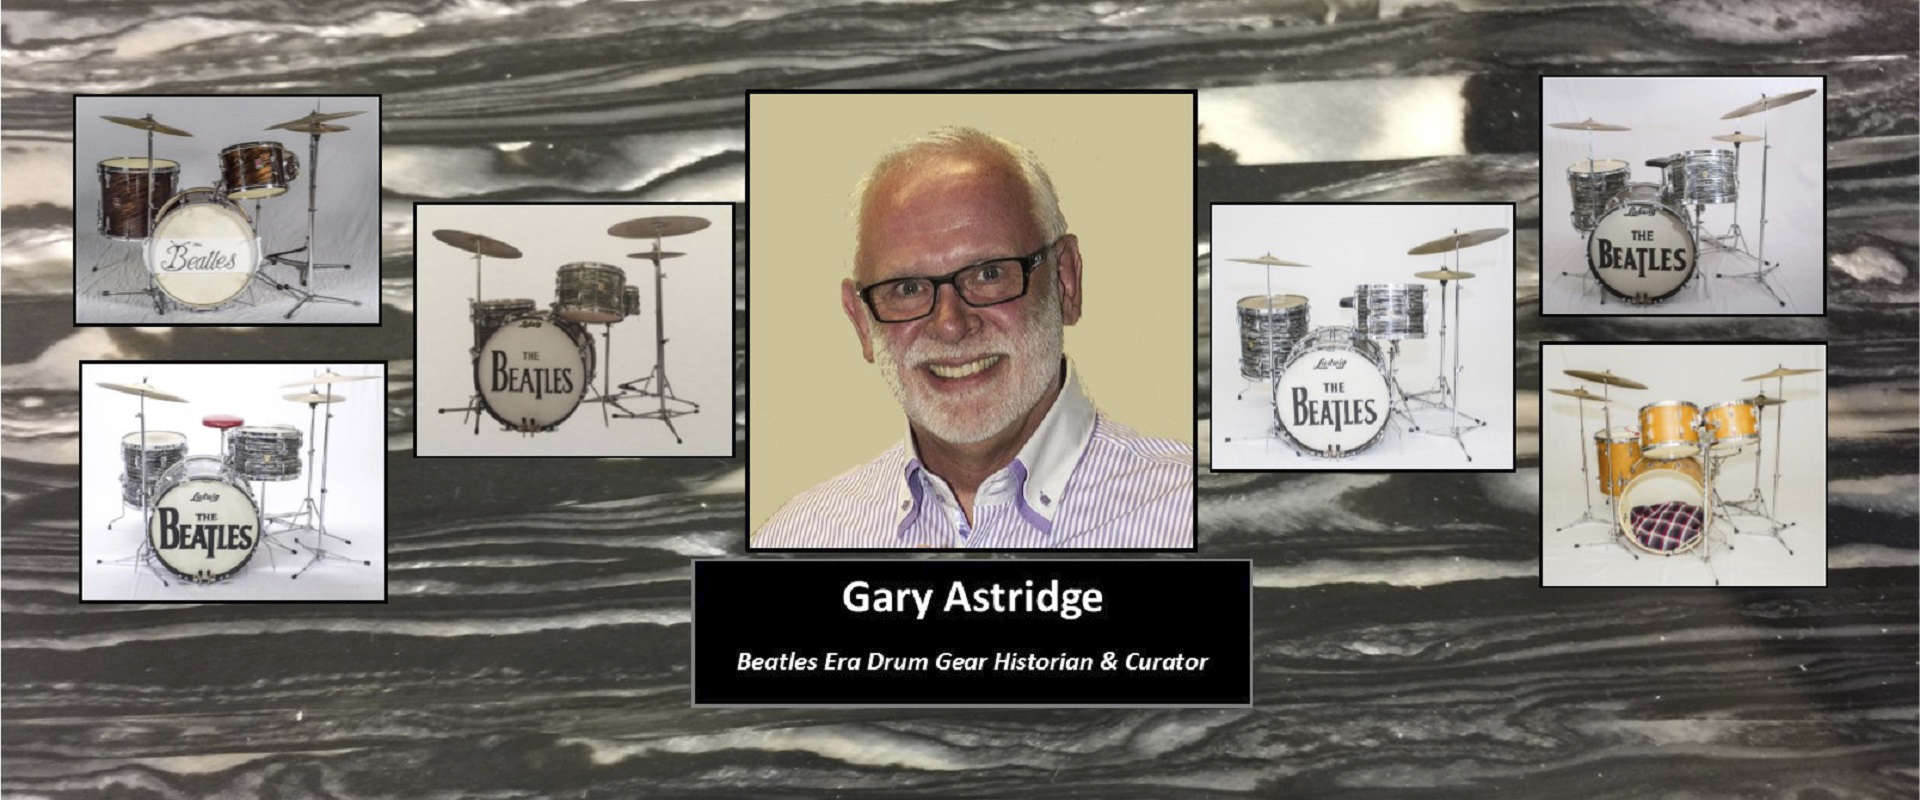 Gary Astridge - Beatles Historian